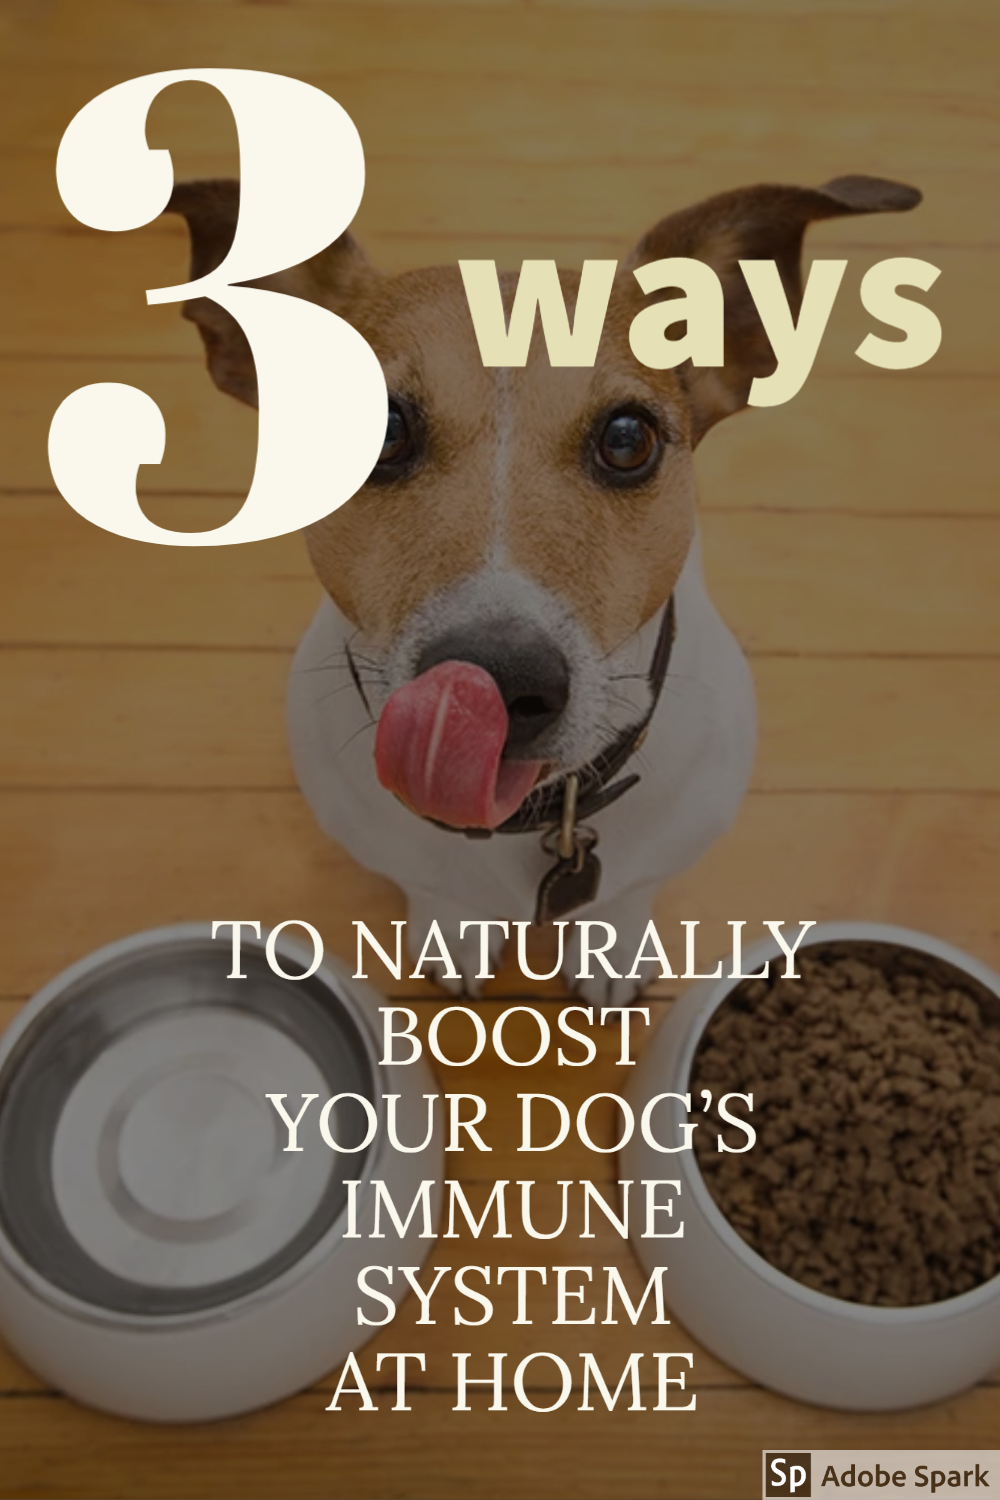 3 Ways To Naturally Boost Your Dog S Immune System At Home In 2020 Immune System Boost Immune System Your Dog